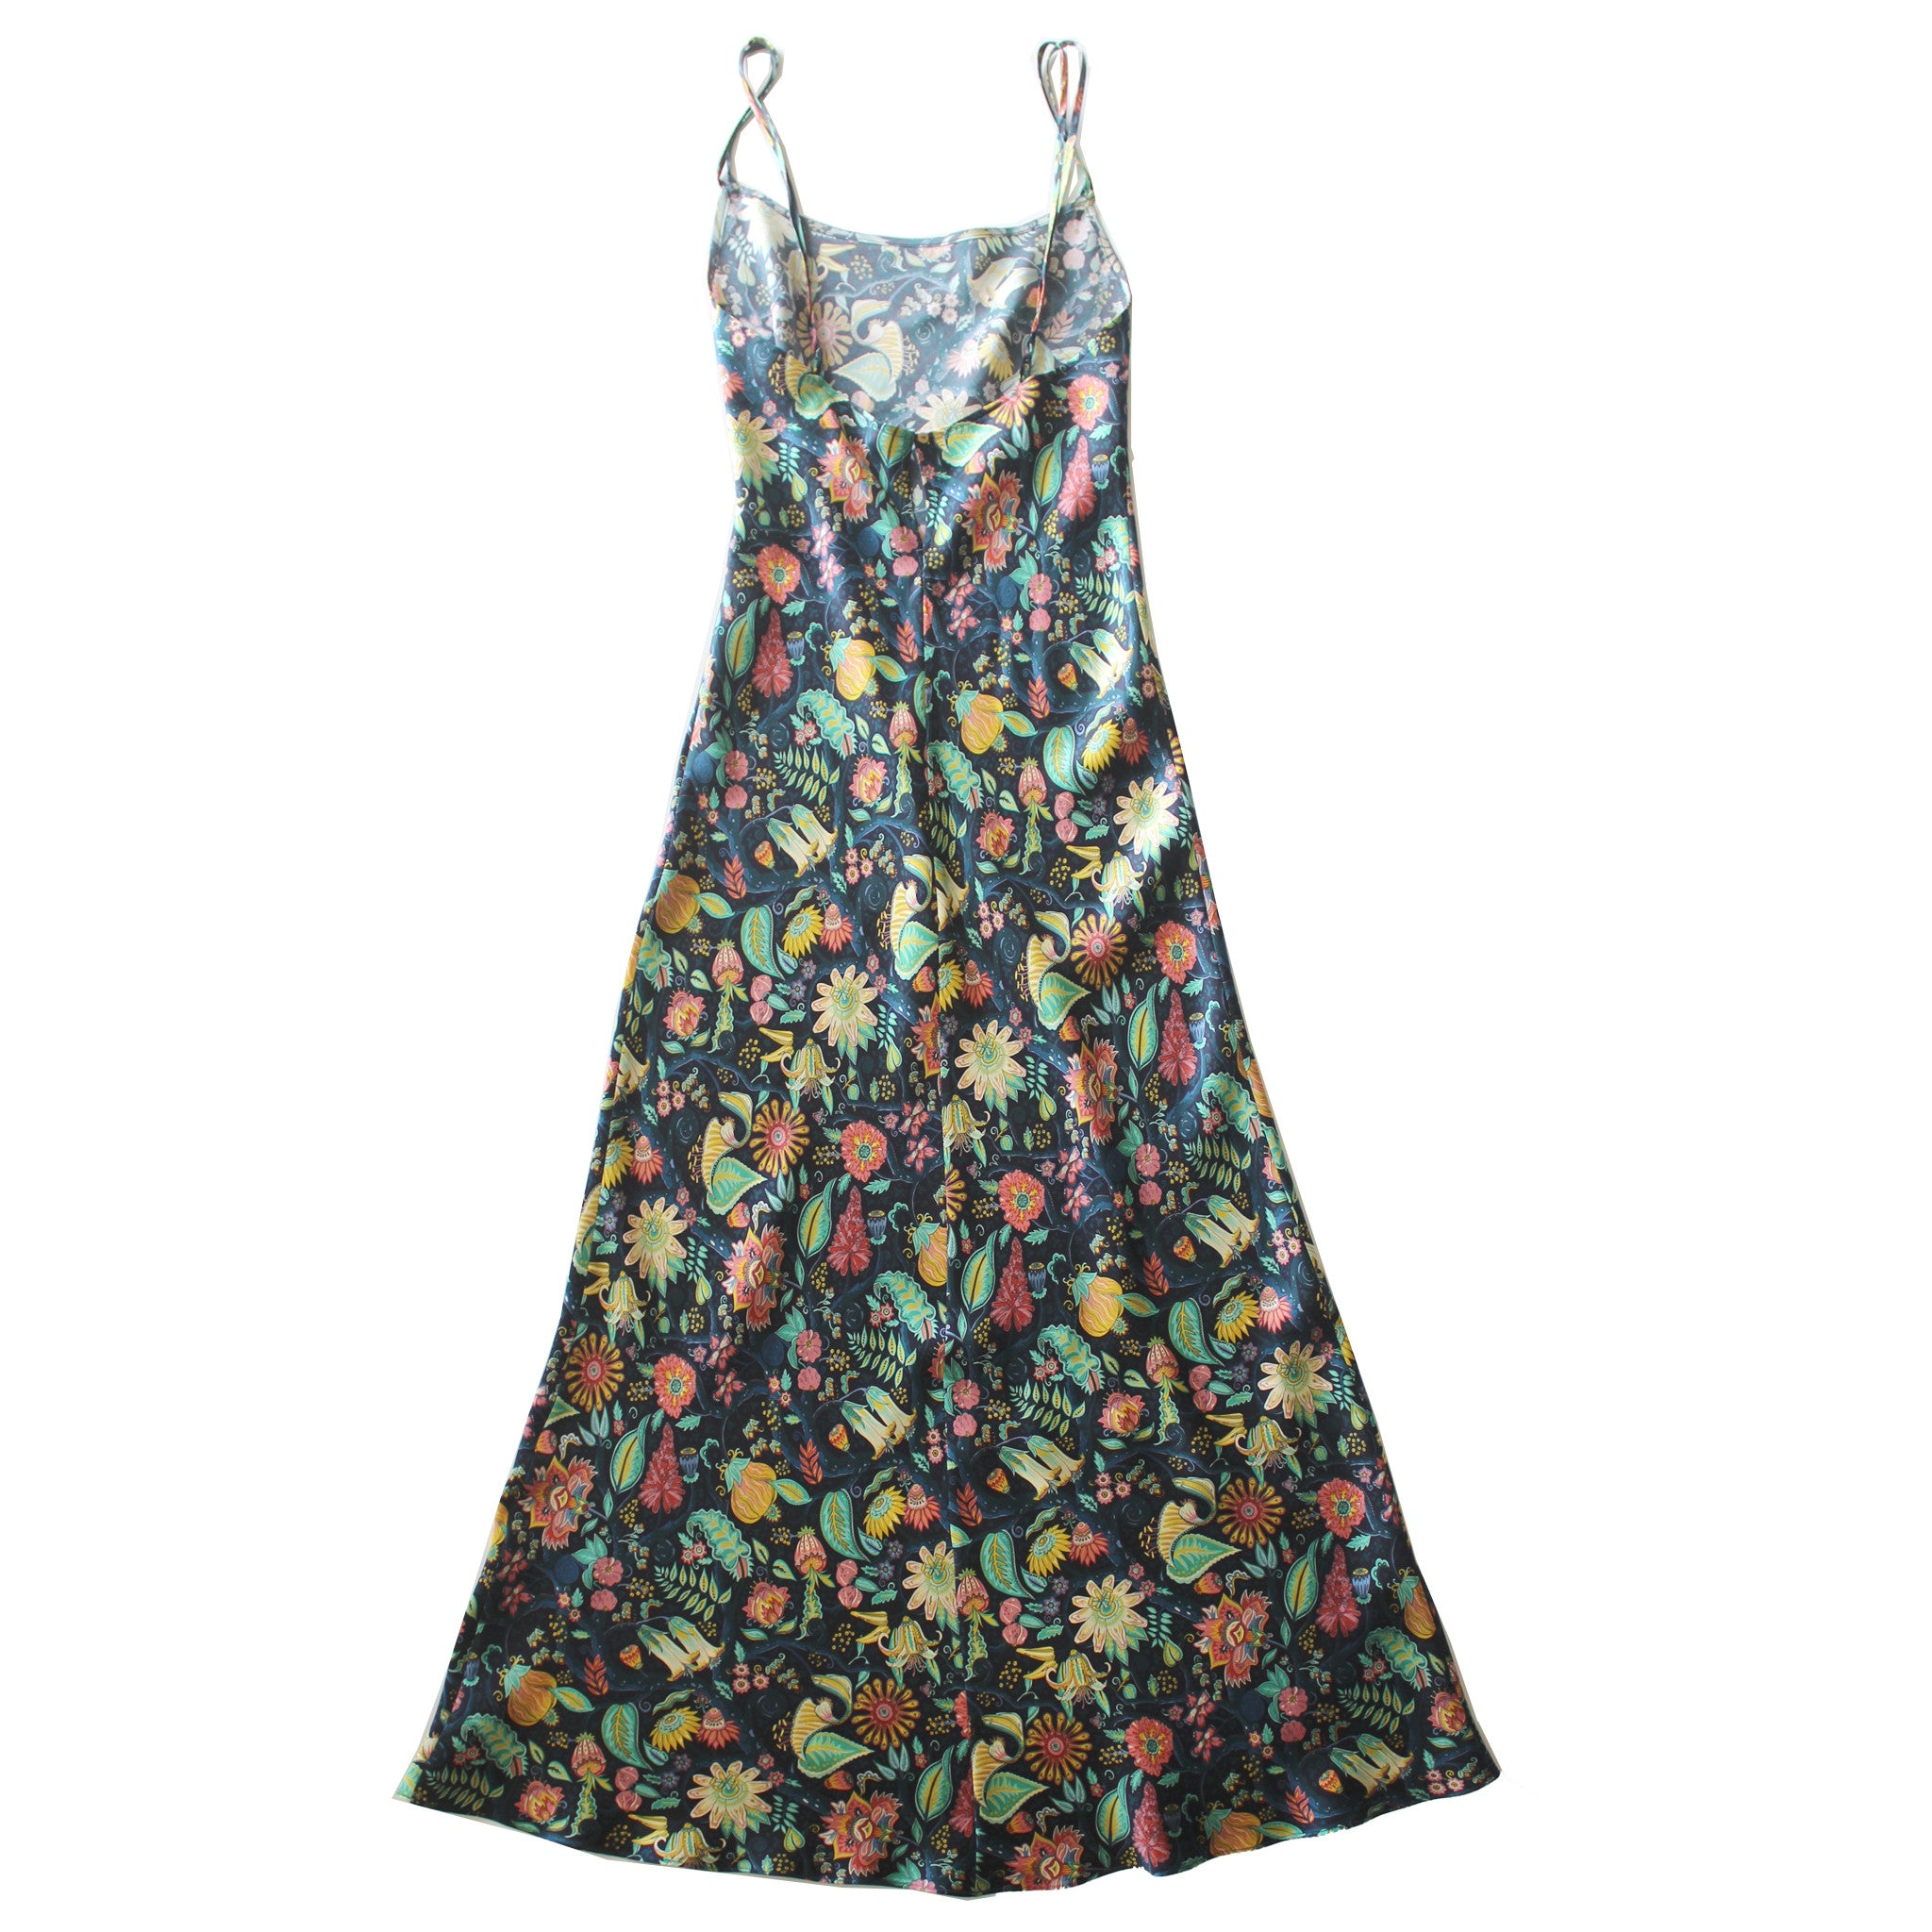 Juno Slip in Tree of Life Liberty Print Silk Satin